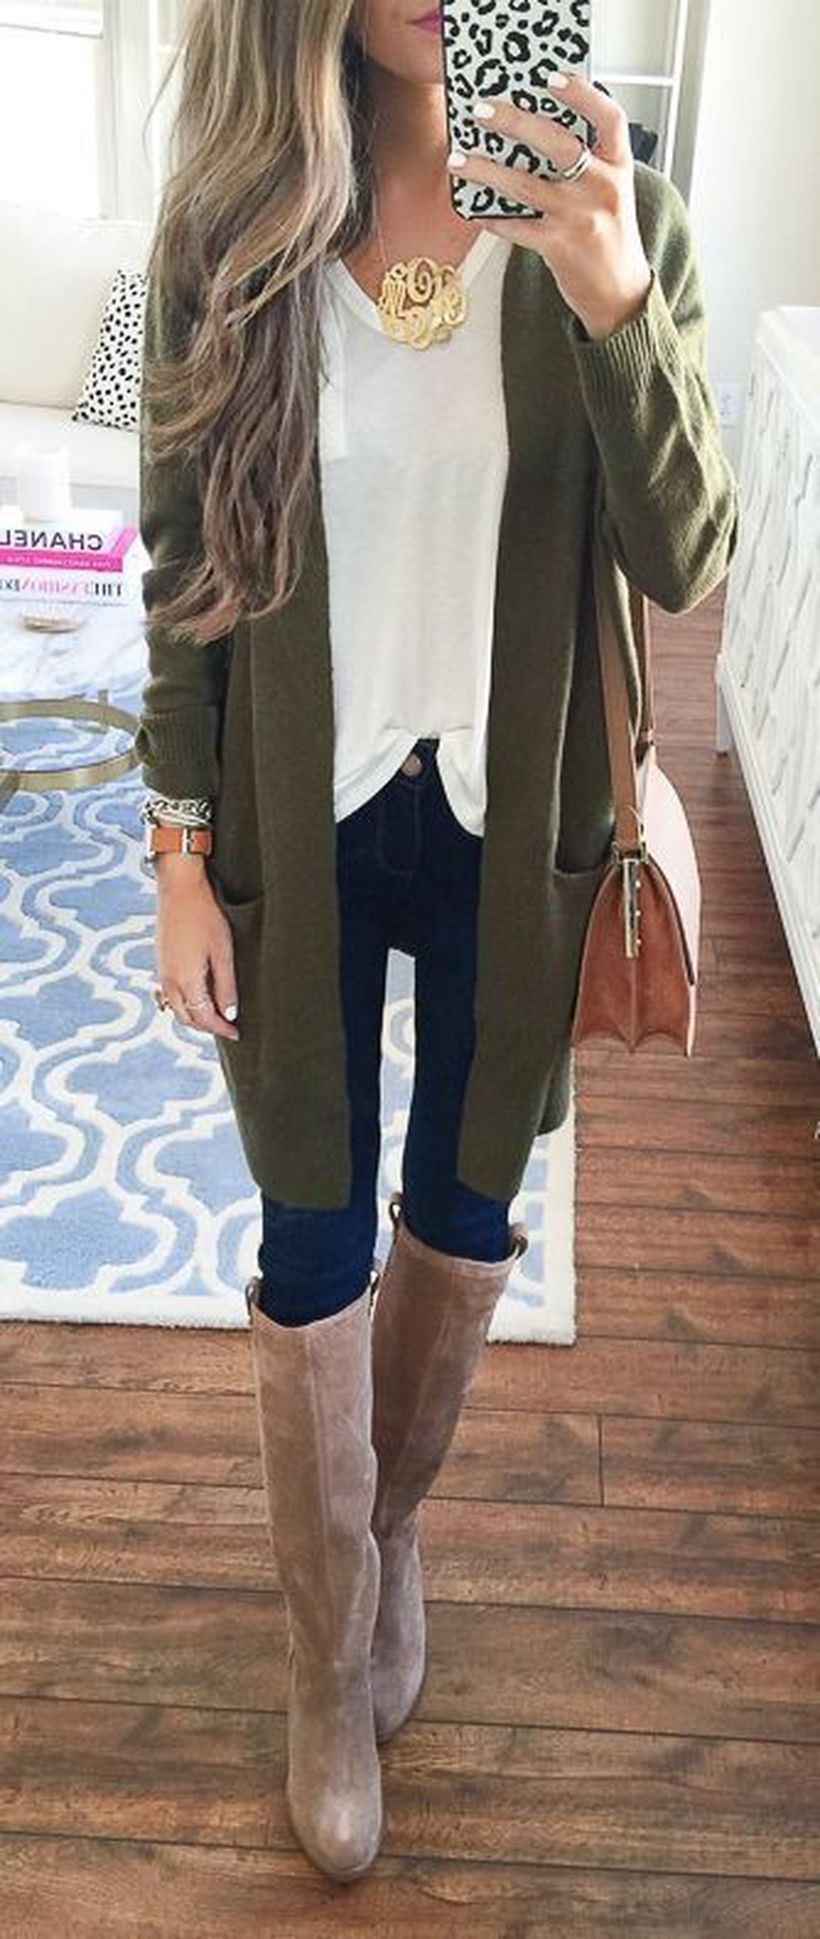 2017 fall fashions trend inspirations for work 23